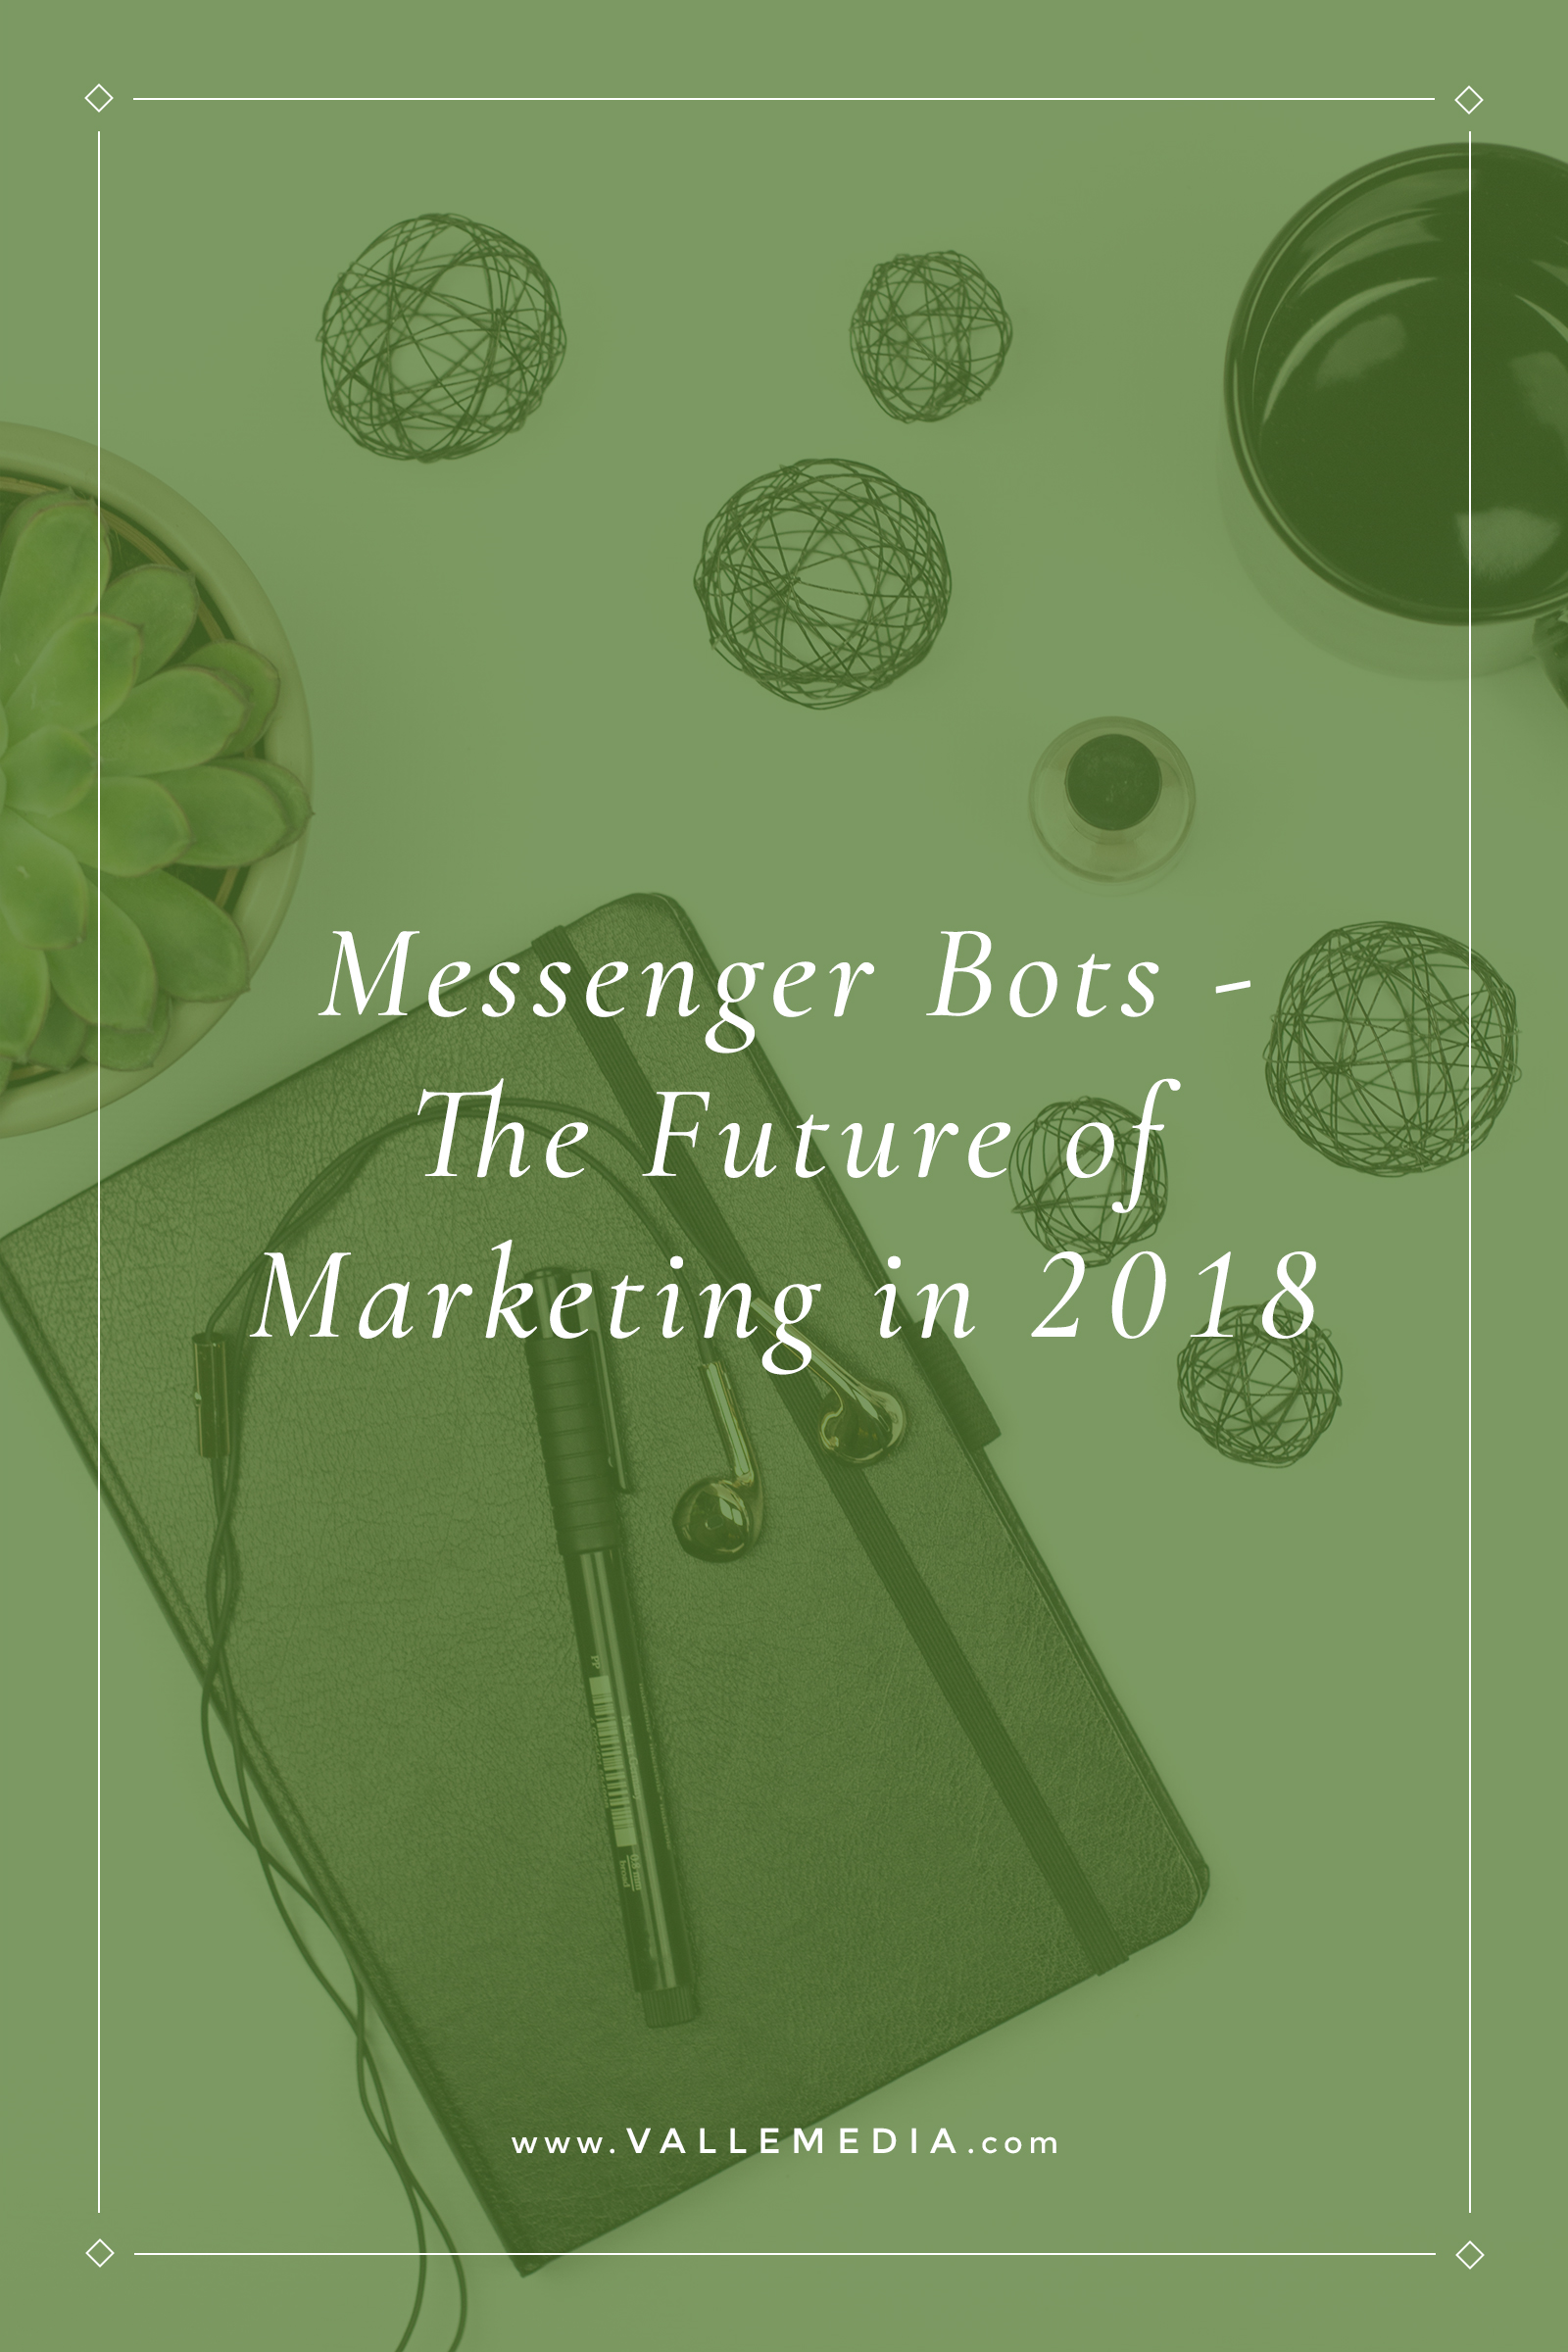 Bots seem to be everywhere these days. Join me as I break down the 4 main reasons I think bots are awesome and the future of digital marketing in 2018.